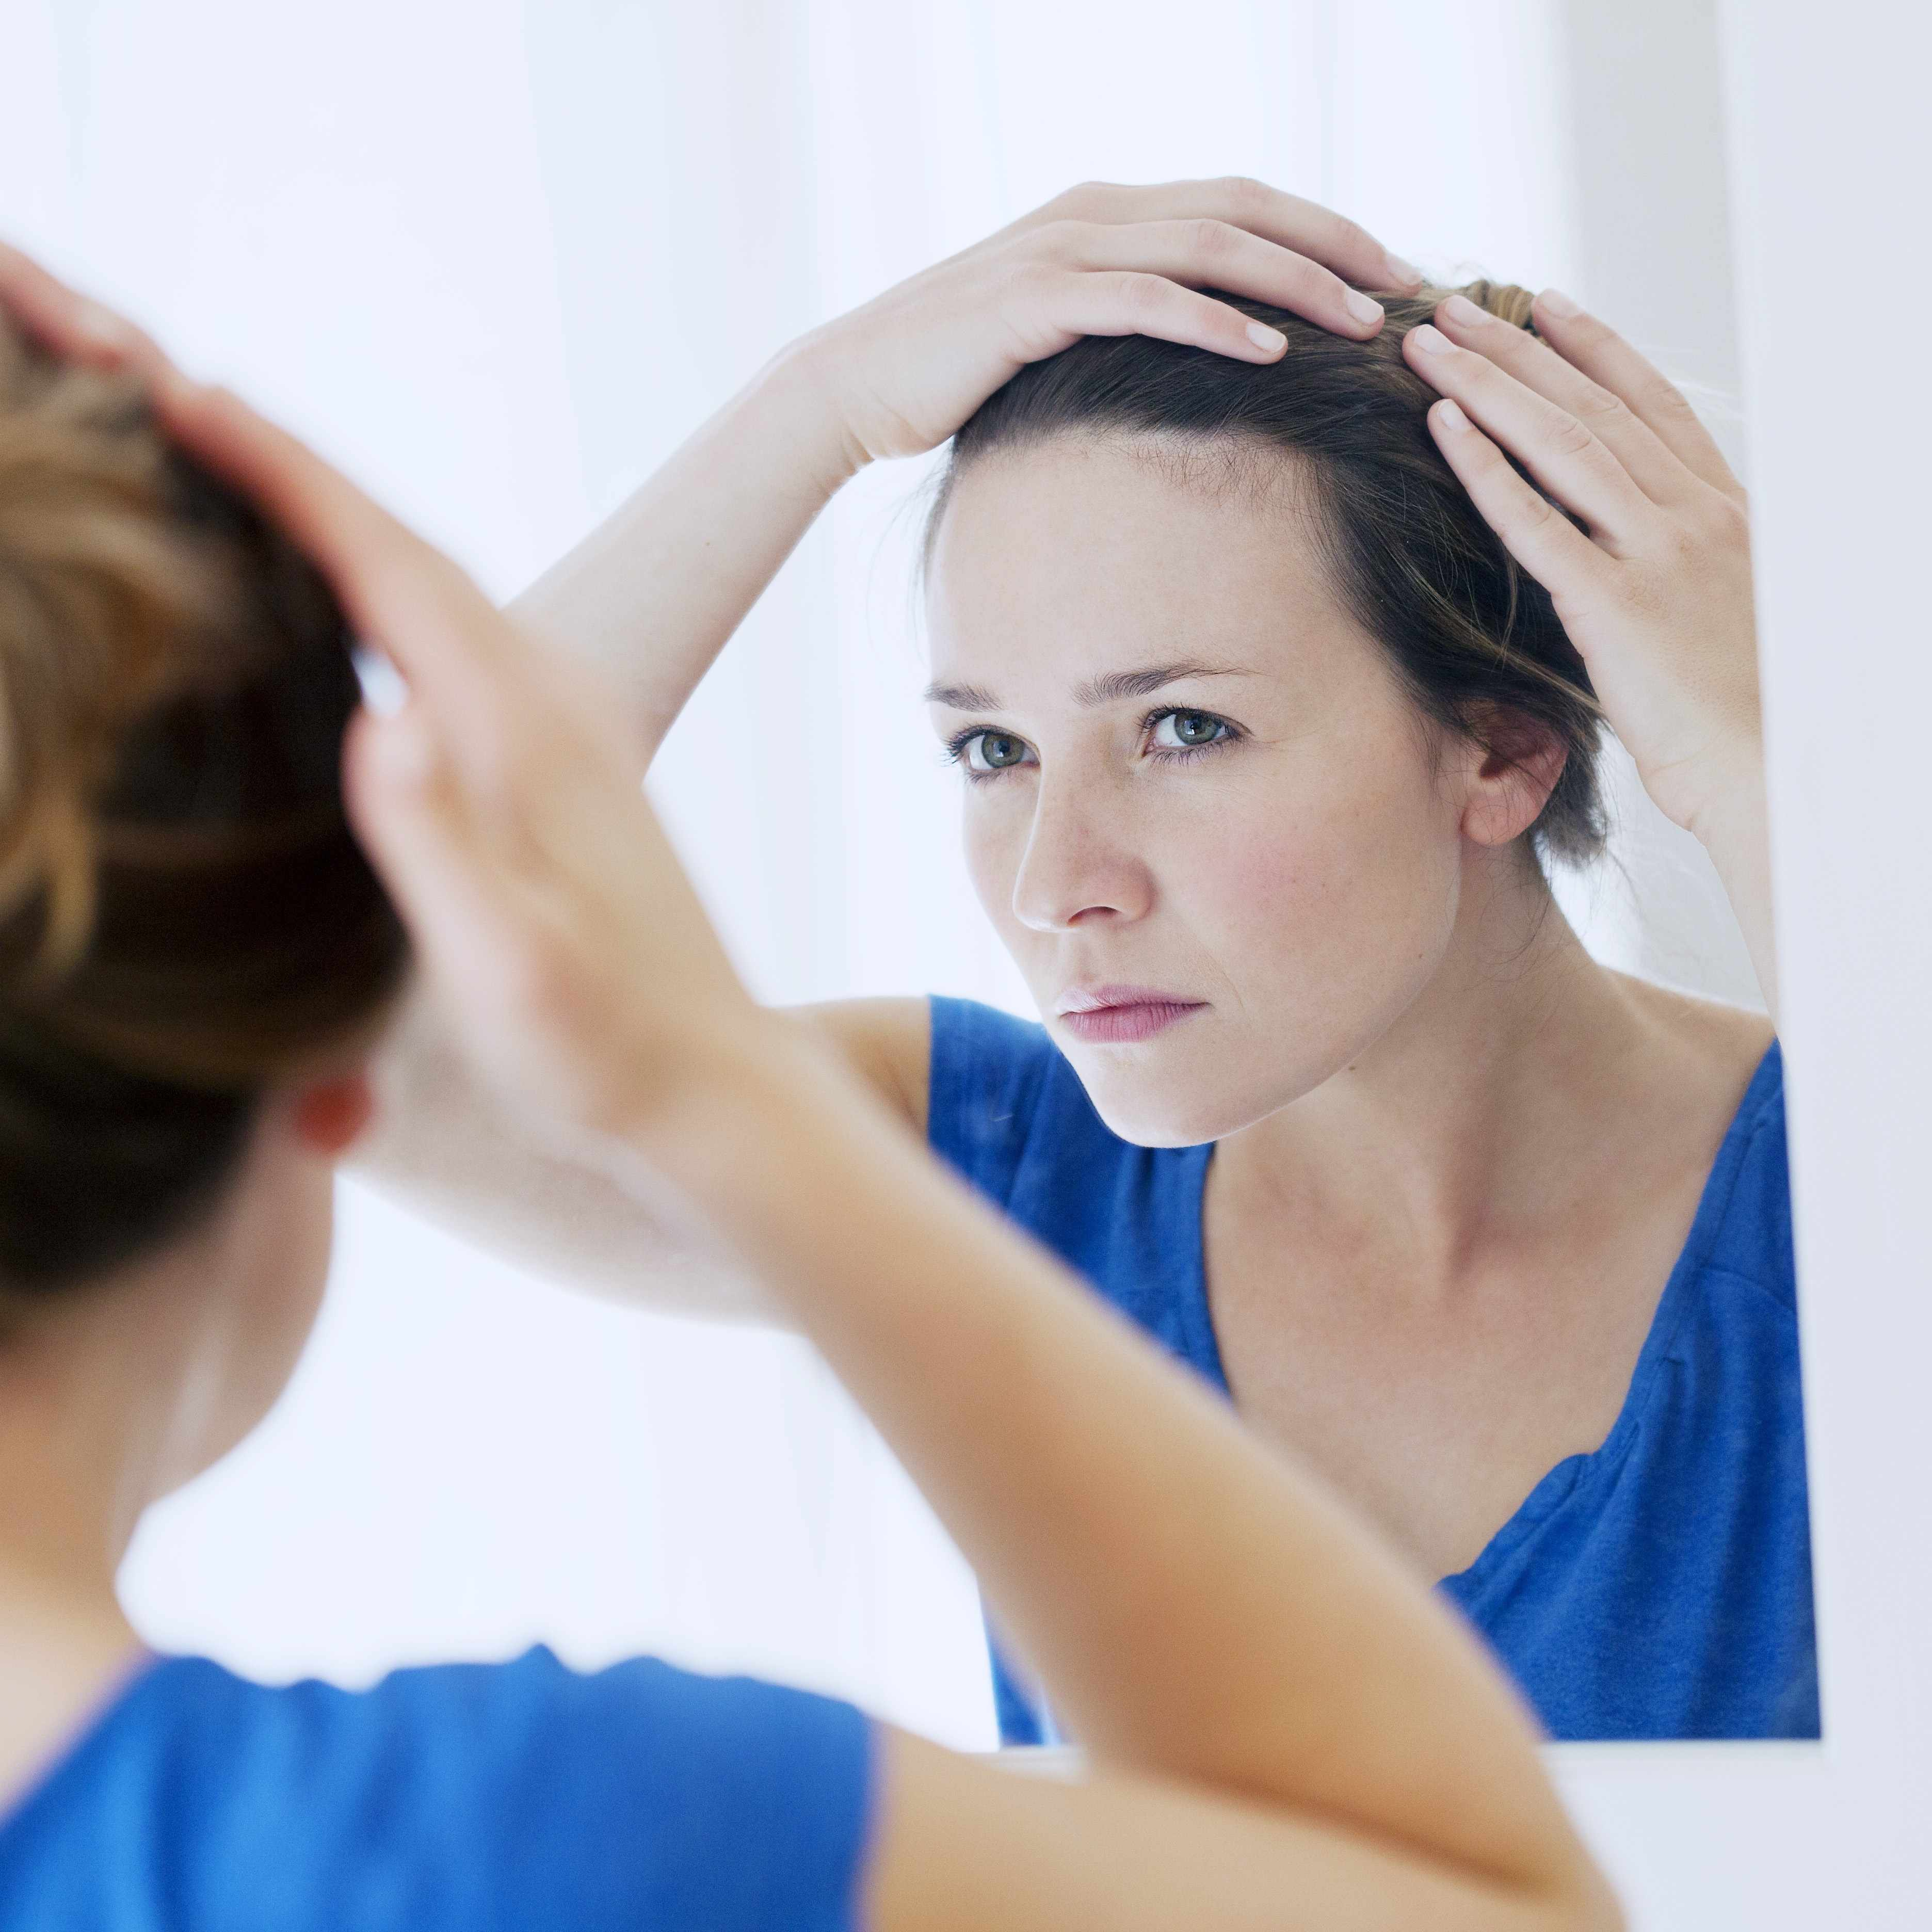 a woman looking at herself in a mirror, examining her hair and scalp